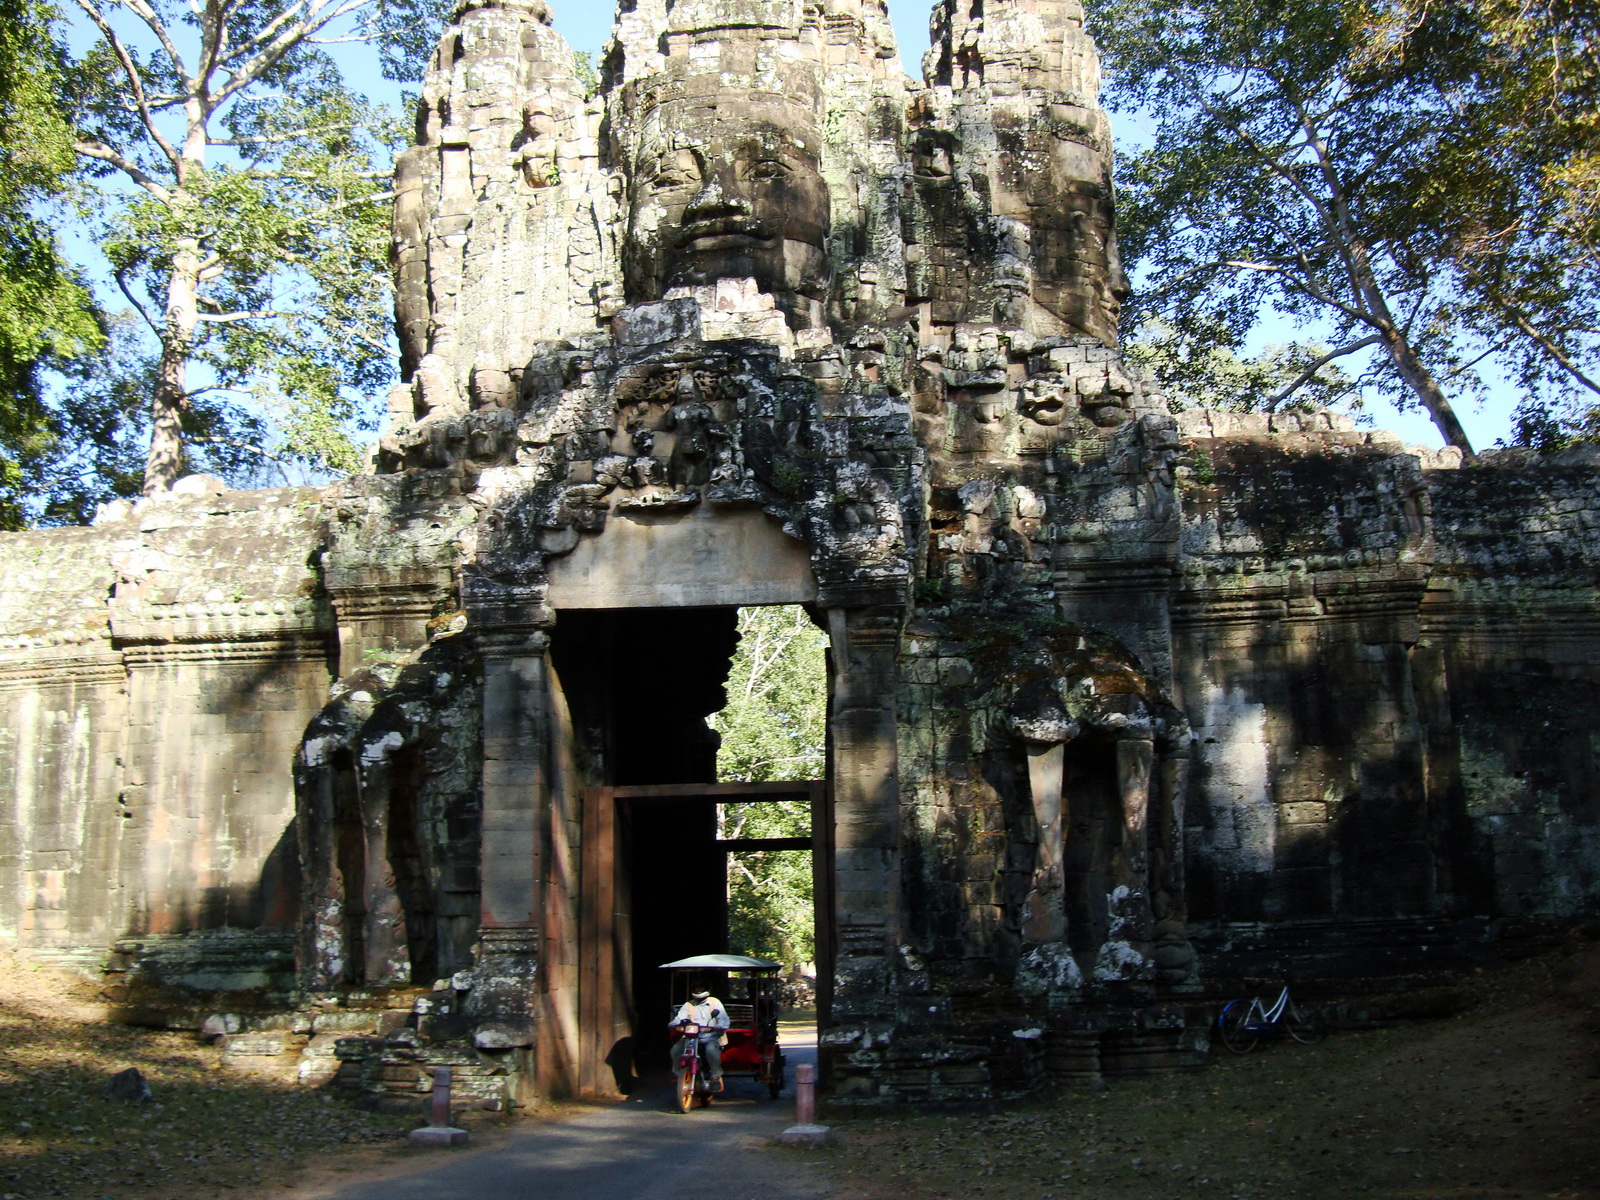 Angkor Wat style architecture Victory Gate Jan 2010 05